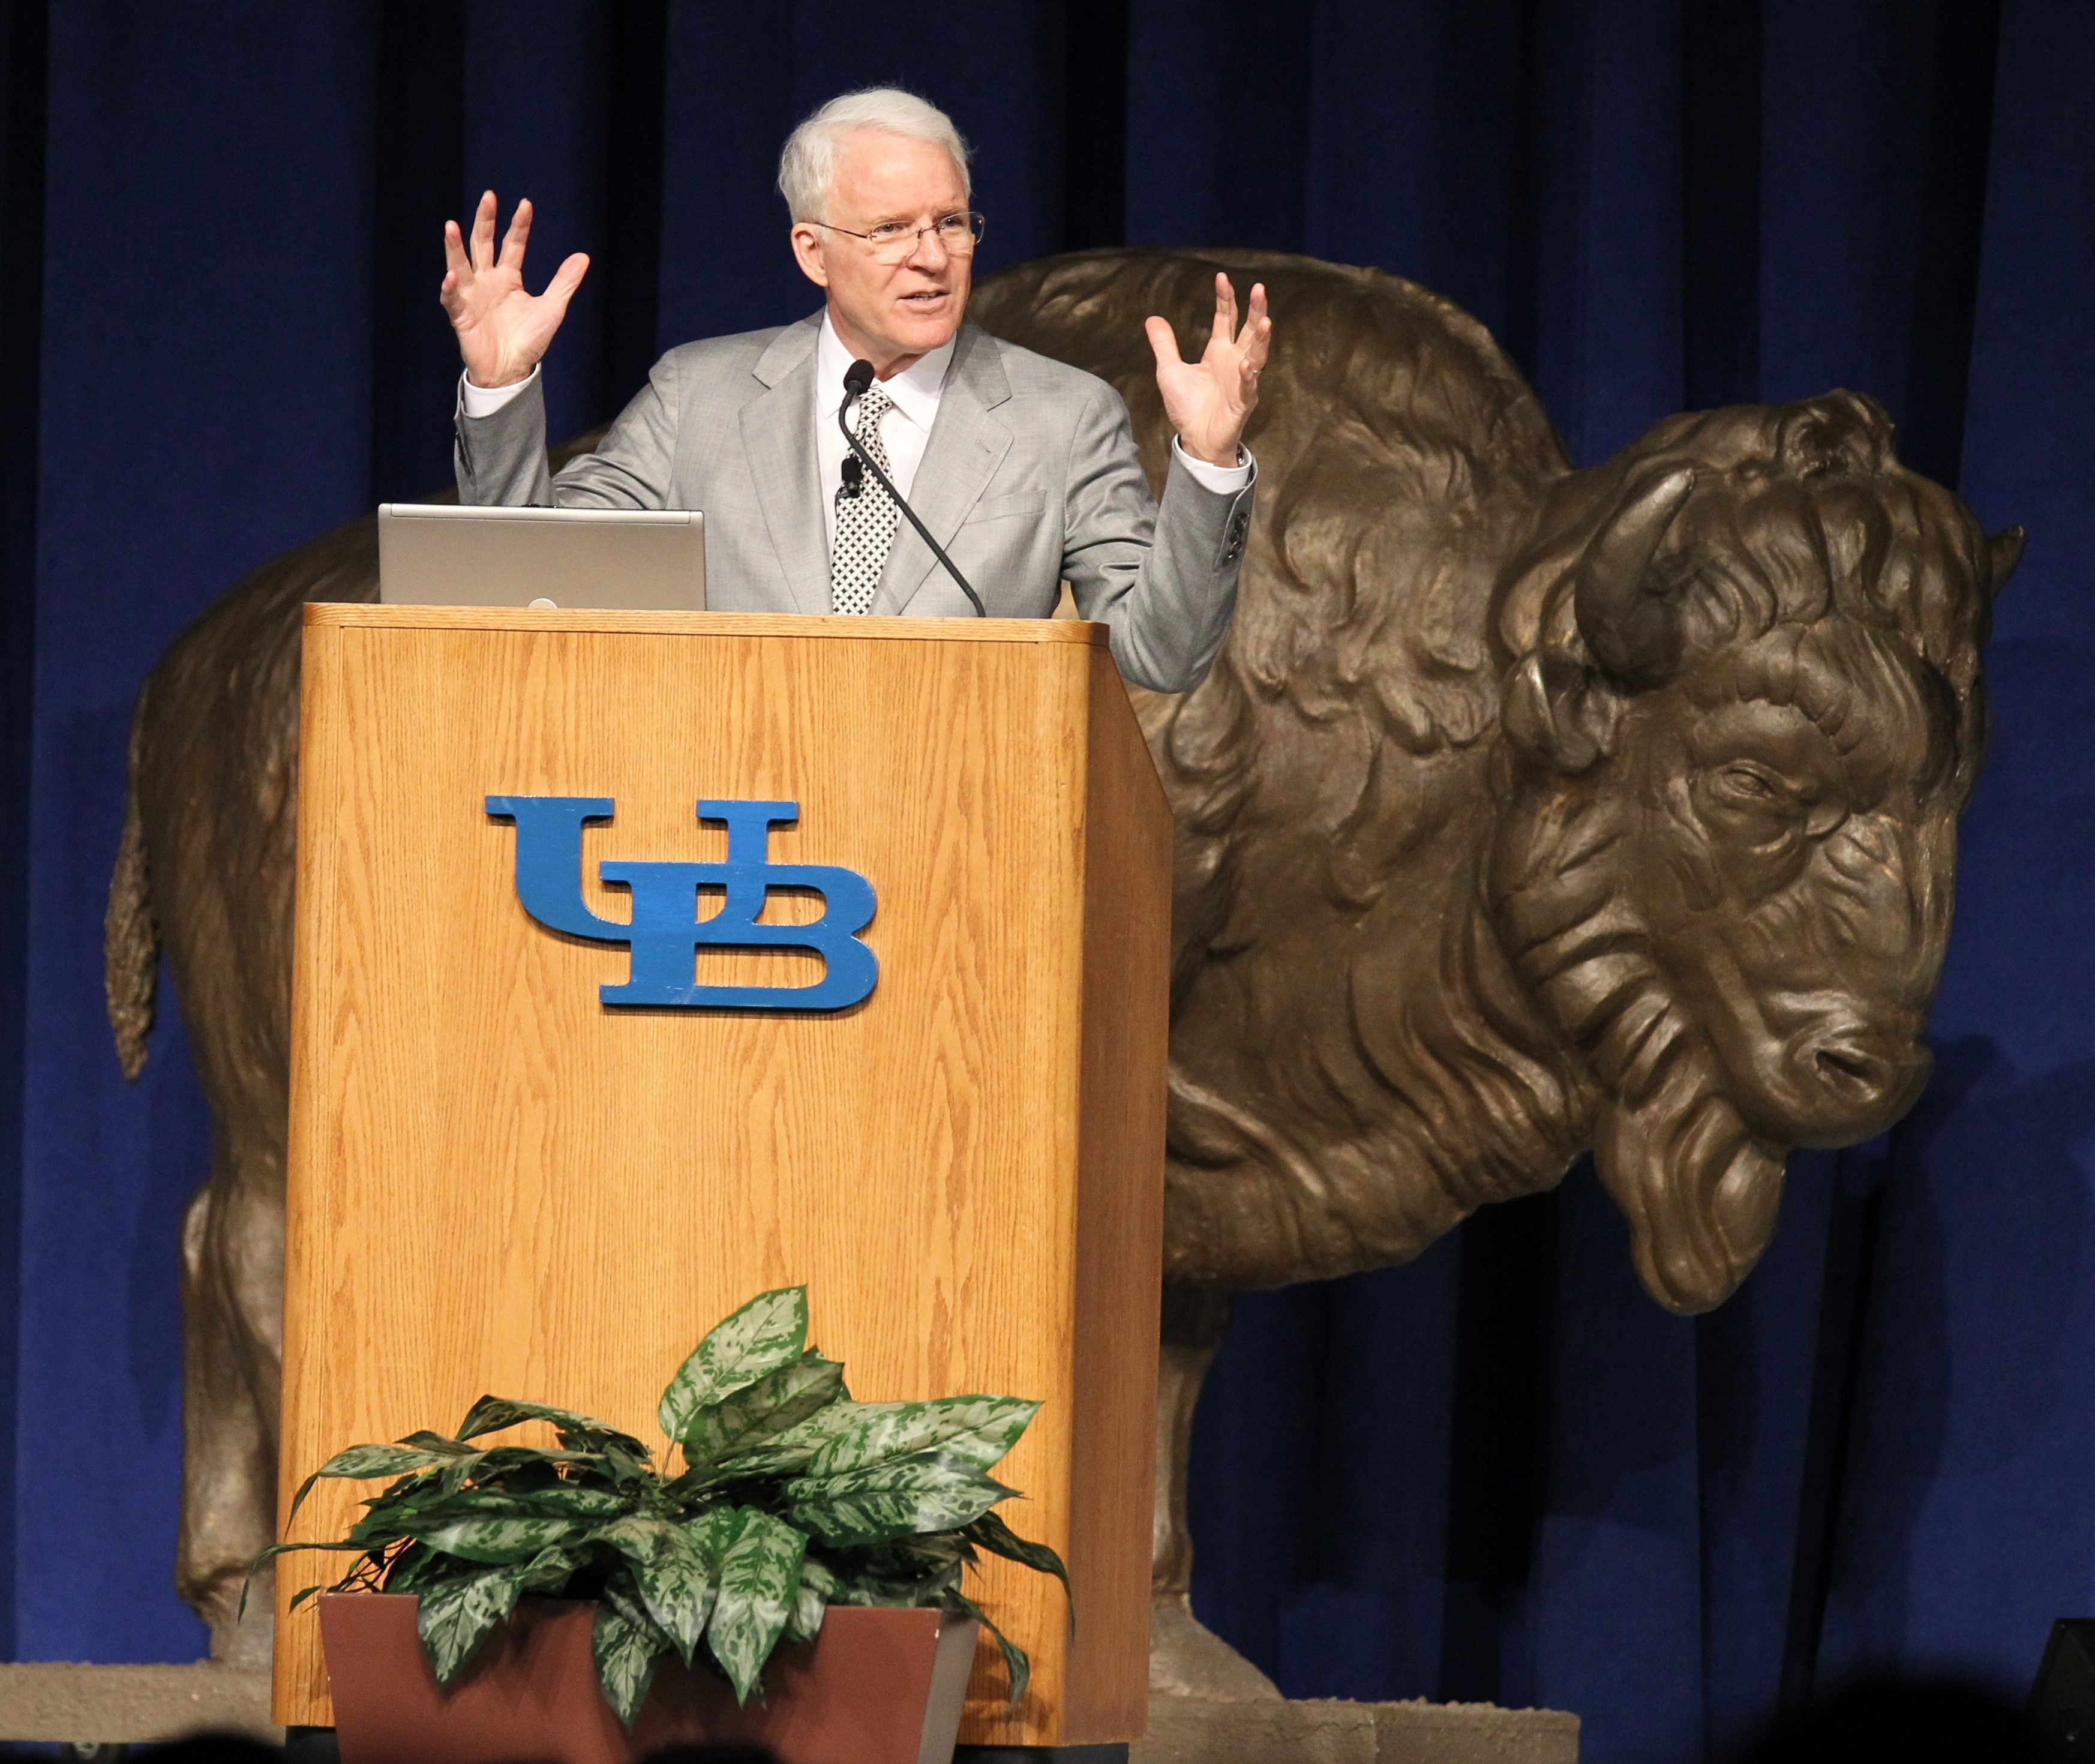 Funny guy Steve Martin, appearing as part of the UB Distinguished Speaker Series, took a break from comedy at Alumni Arena Saturday.